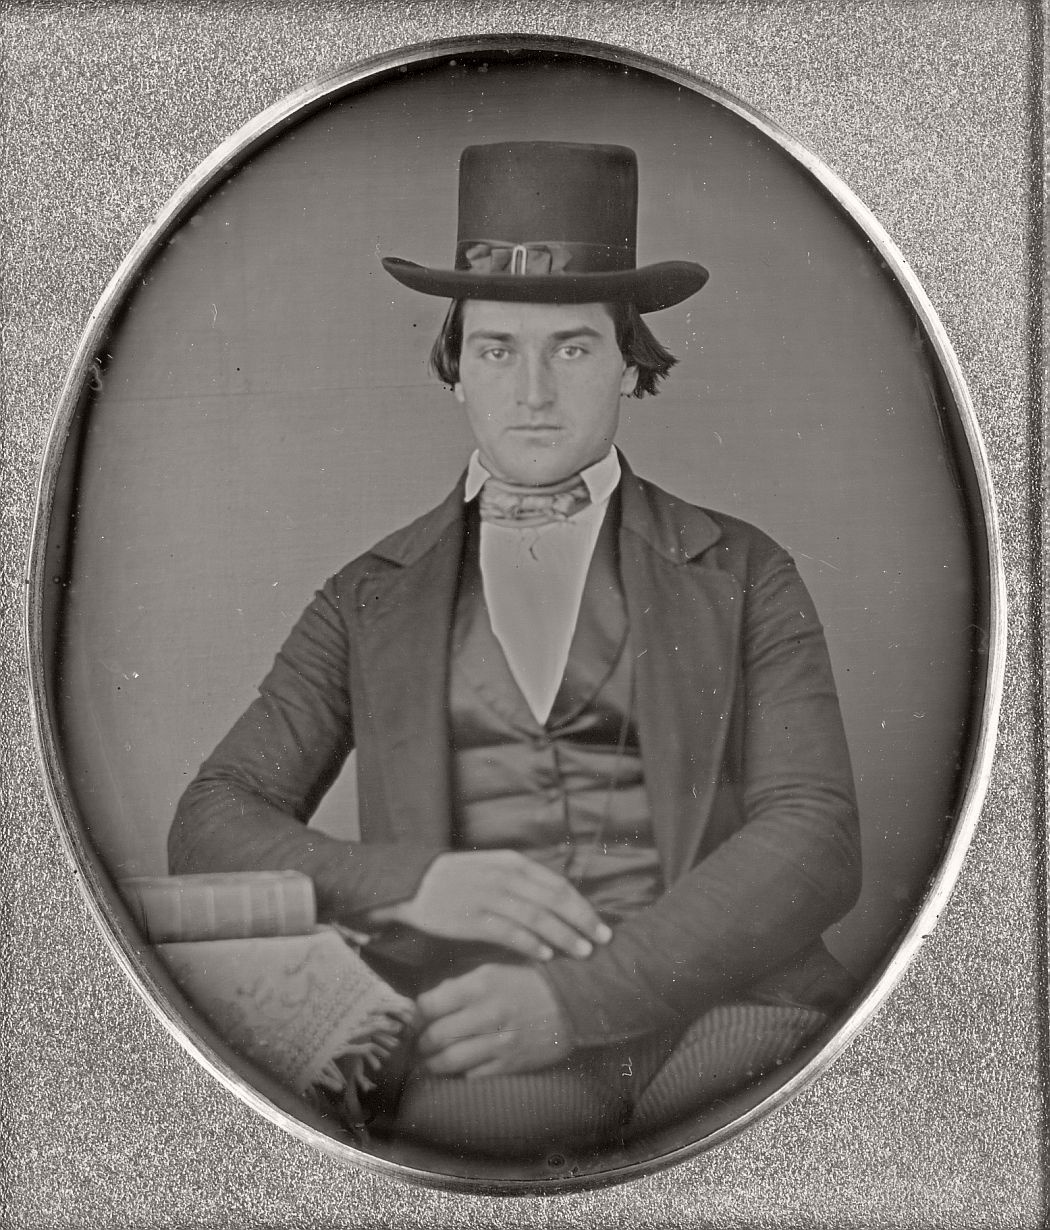 victorian-era-daguerreotype-of-men-in-hat-1850s-xix-century-15